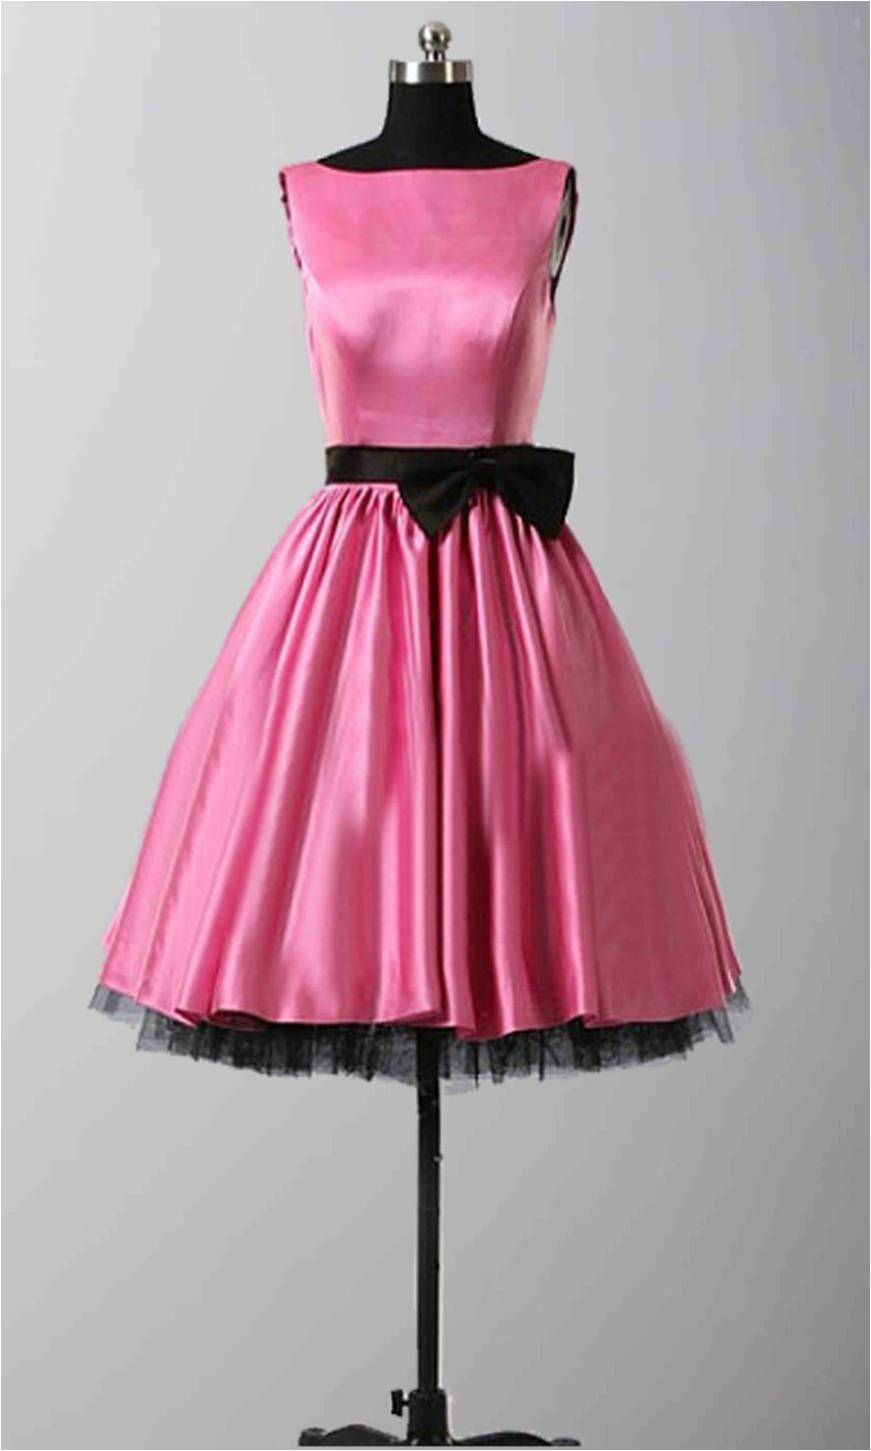 Bateau Pink Short Satin BowKnot Retro Bridesmaid Gowns KSP278 [KSP278] - £85.00 : Cheap Prom Dresses Uk, Bridesmaid Dresses, 2014 Prom & Evening Dresses, Look for cheap elegant prom dresses 2014, cocktail gowns, or dresses for special occasions? kissprom.co.uk offers various bridesmaid dresses, evening dress, free shipping to UK etc.